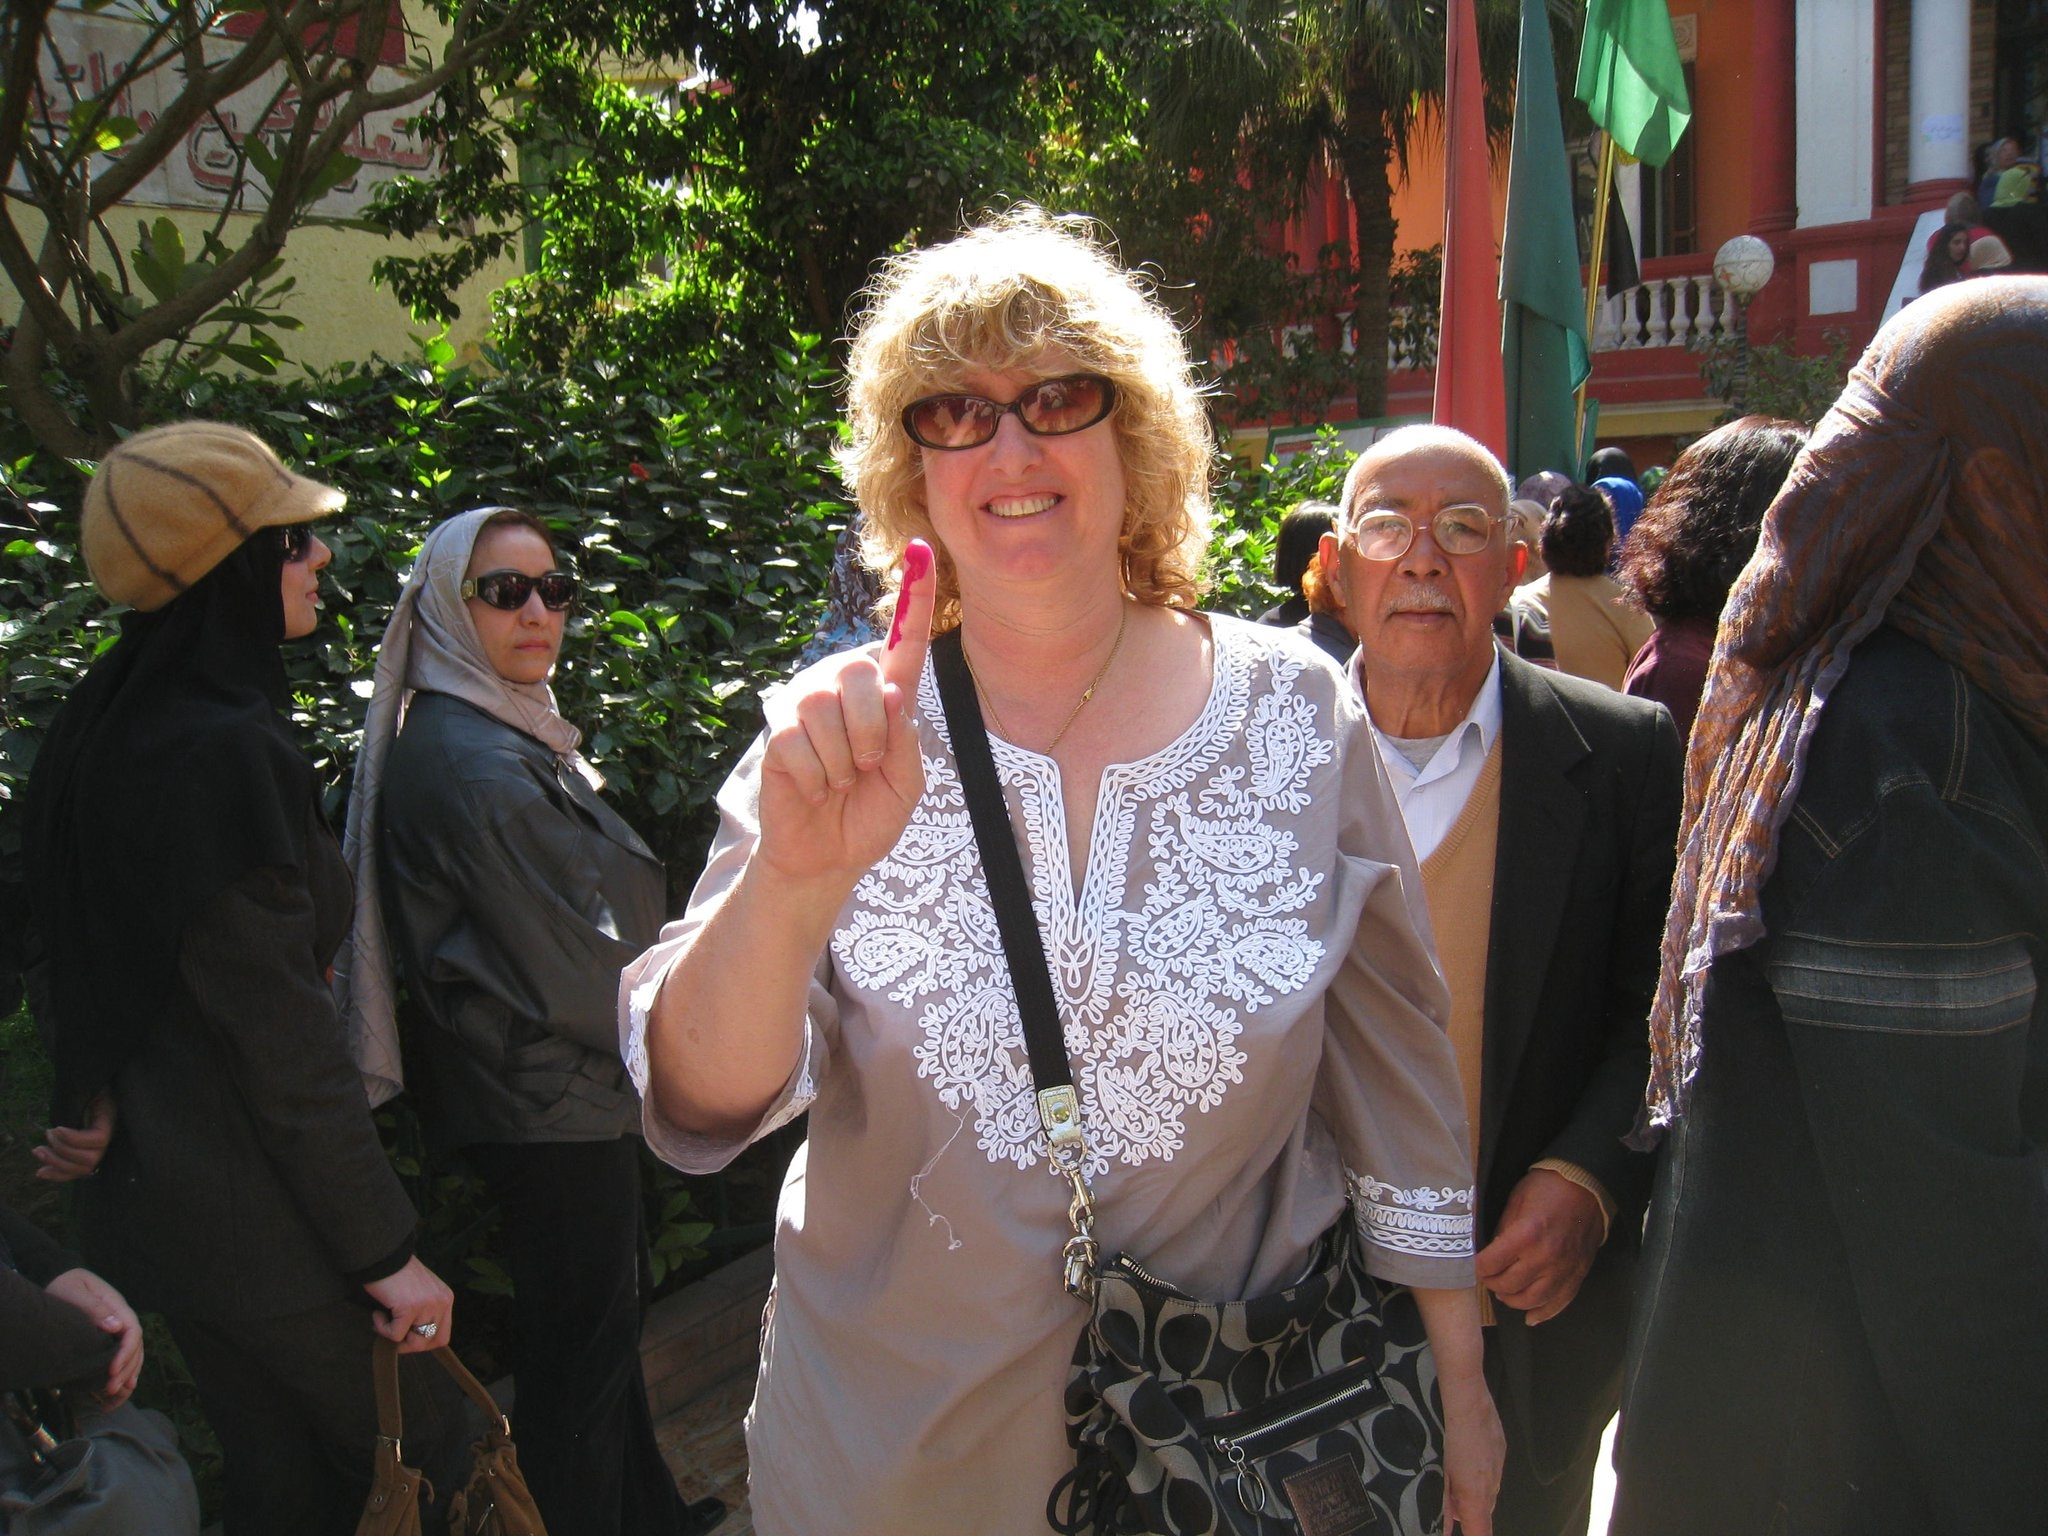 """There Is Hope Now""- Conservationist On Egypt's Post-Revolution Future"